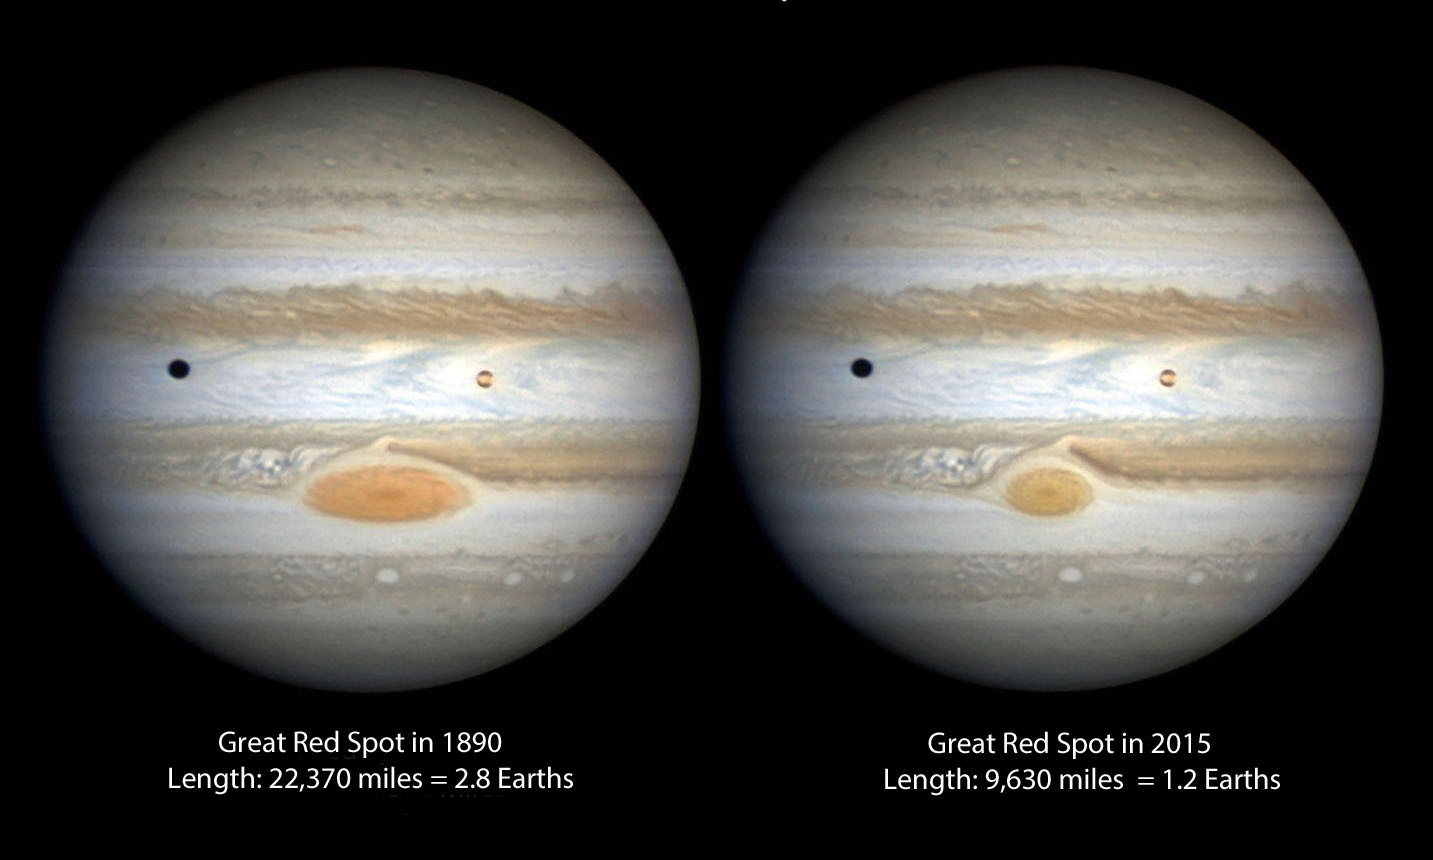 miscarea furtunii in atmosfera lui Jupiter